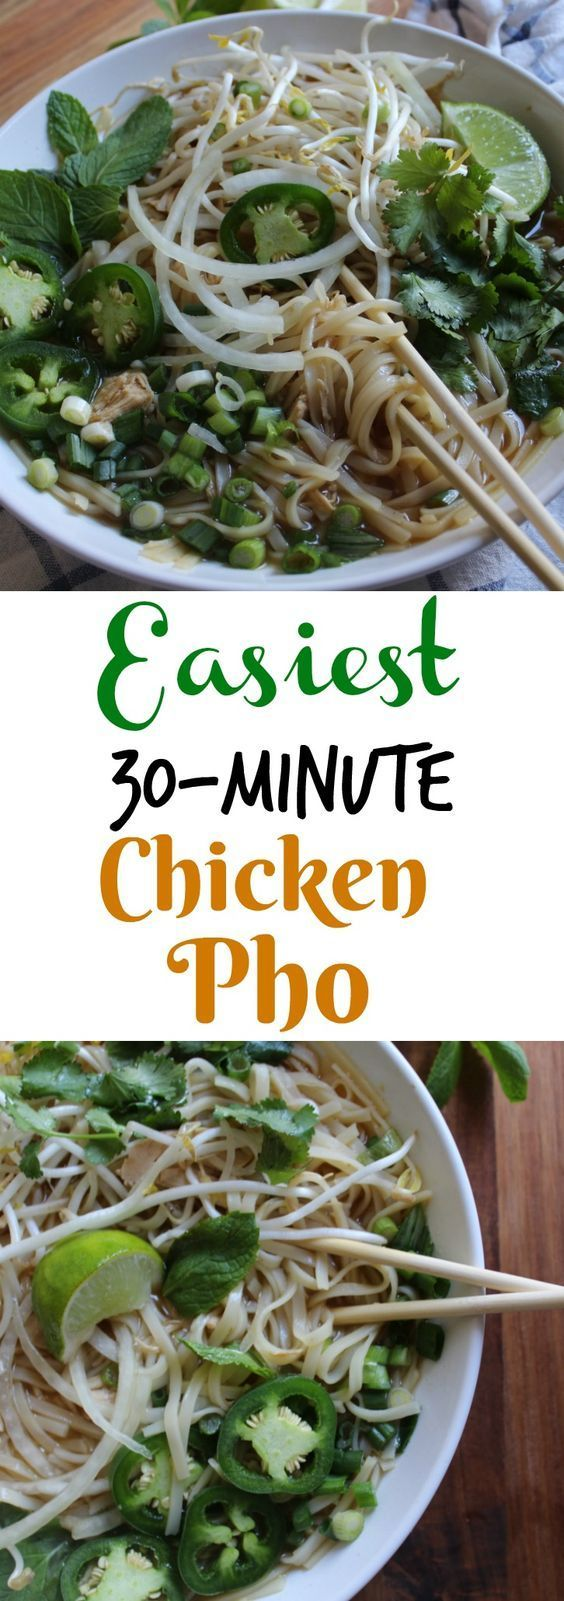 97efd6774 This easy 30 minute Chicken Pho soup is a delicious recipe that won t  require hours in the kitchen. Inspired by the Vietnamese traditional dish